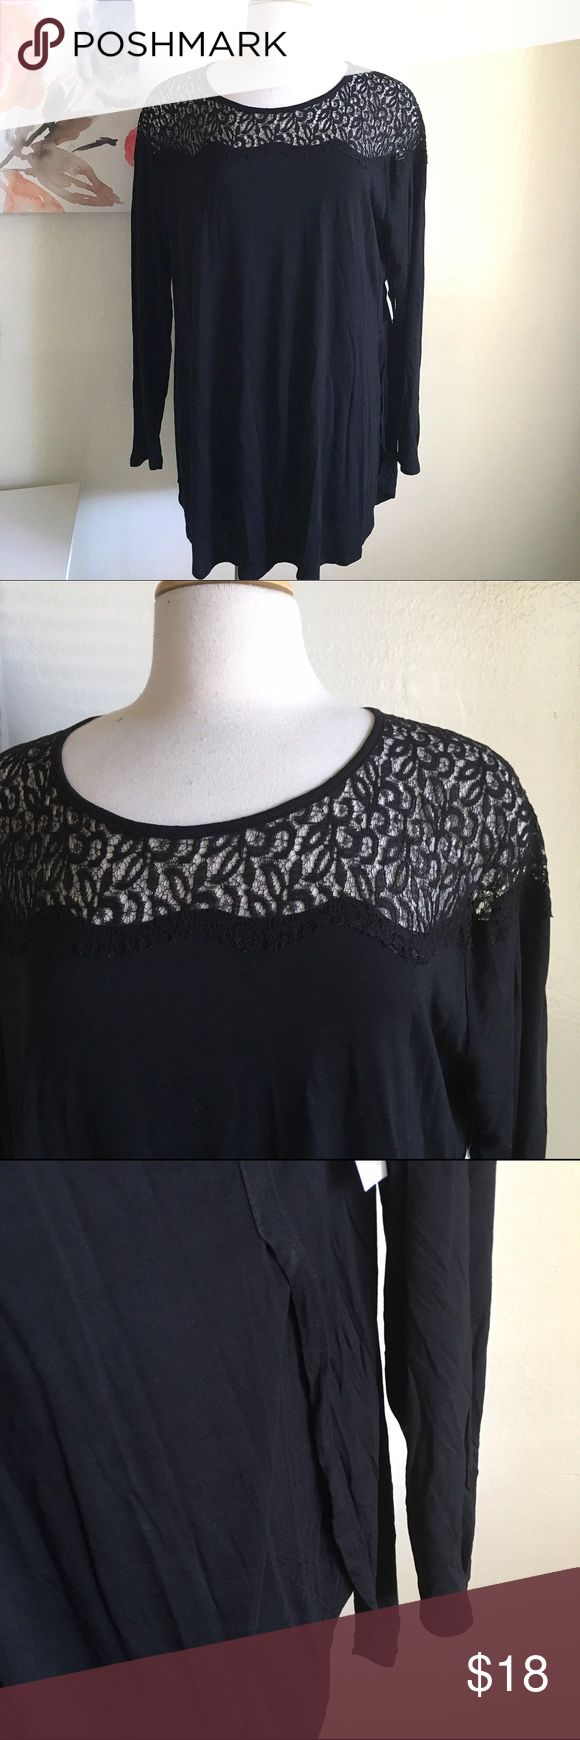 Black tunic Beautiful black tunic. It's a long length and goes past the hips. It's sheer lace among the shoulders. Full length sleeves. It has a split hem on both sides of the hips. Very soft and lightweight. New with tags. Old Navy Tops Tunics